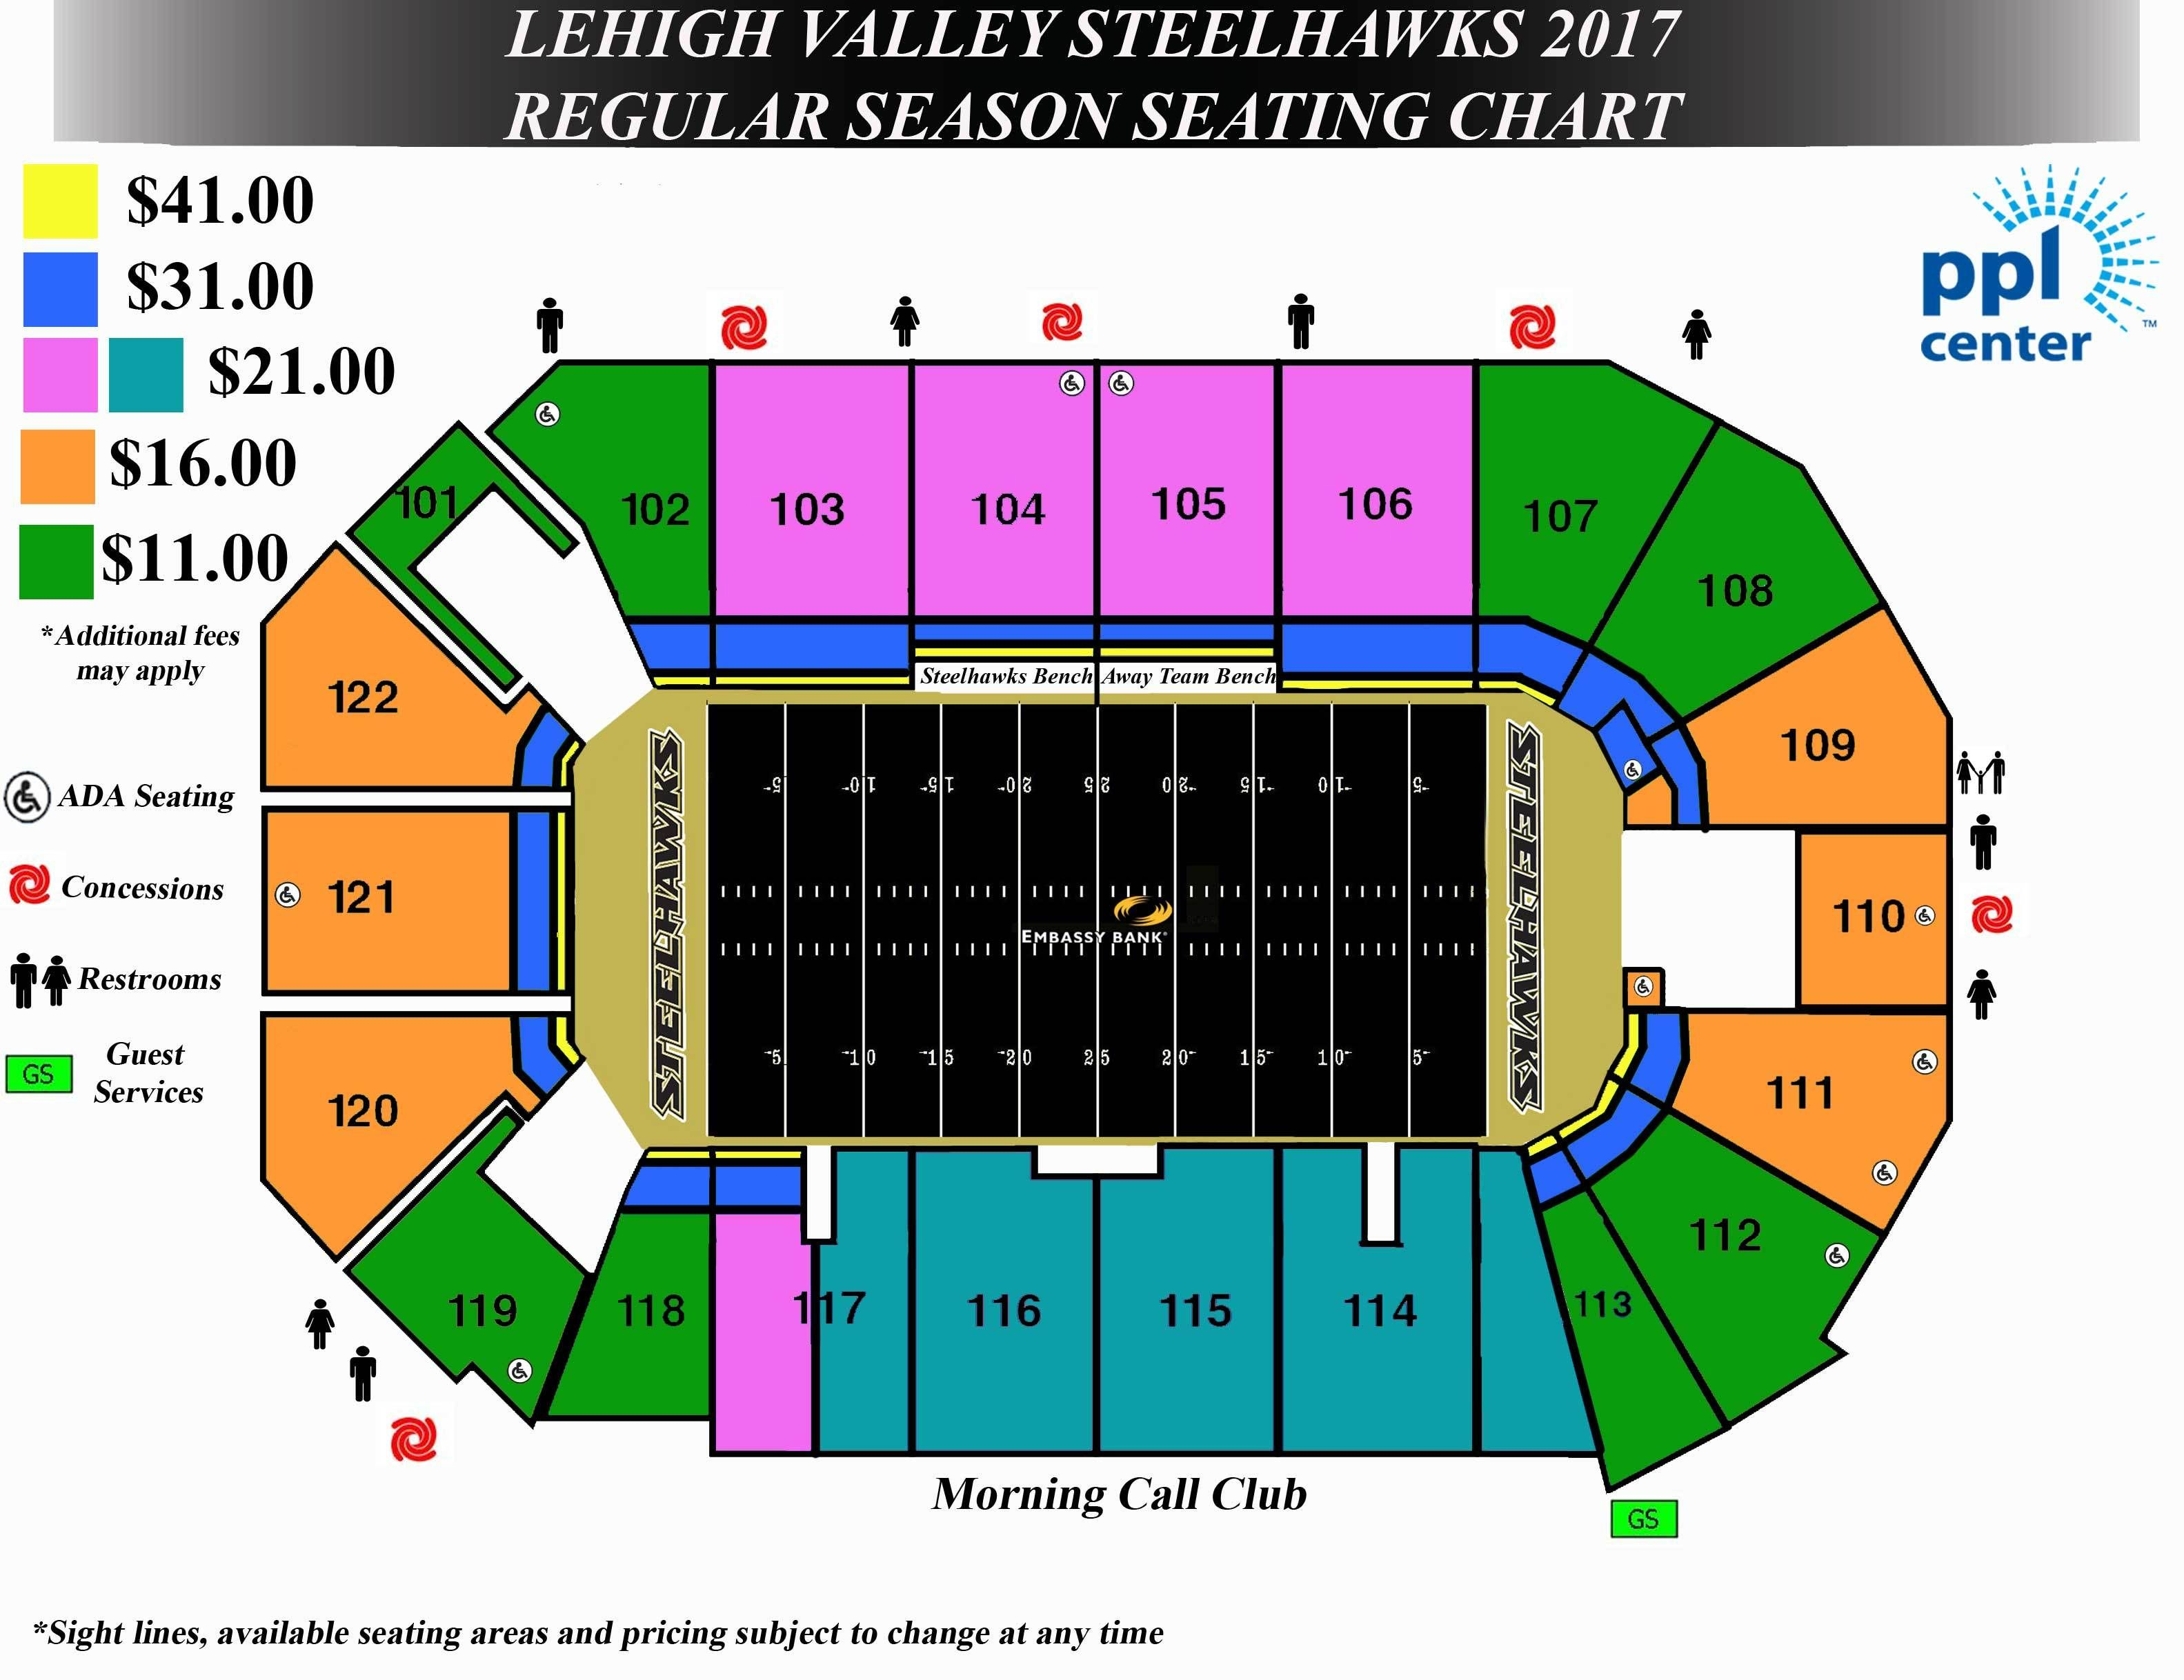 Detailed Seat Row Numbers End Stage Concert Sections Floor Plan Map Arena Lower Club Upper Level Layout Oklahoma City Seating Charts Seating Plan Center Chart